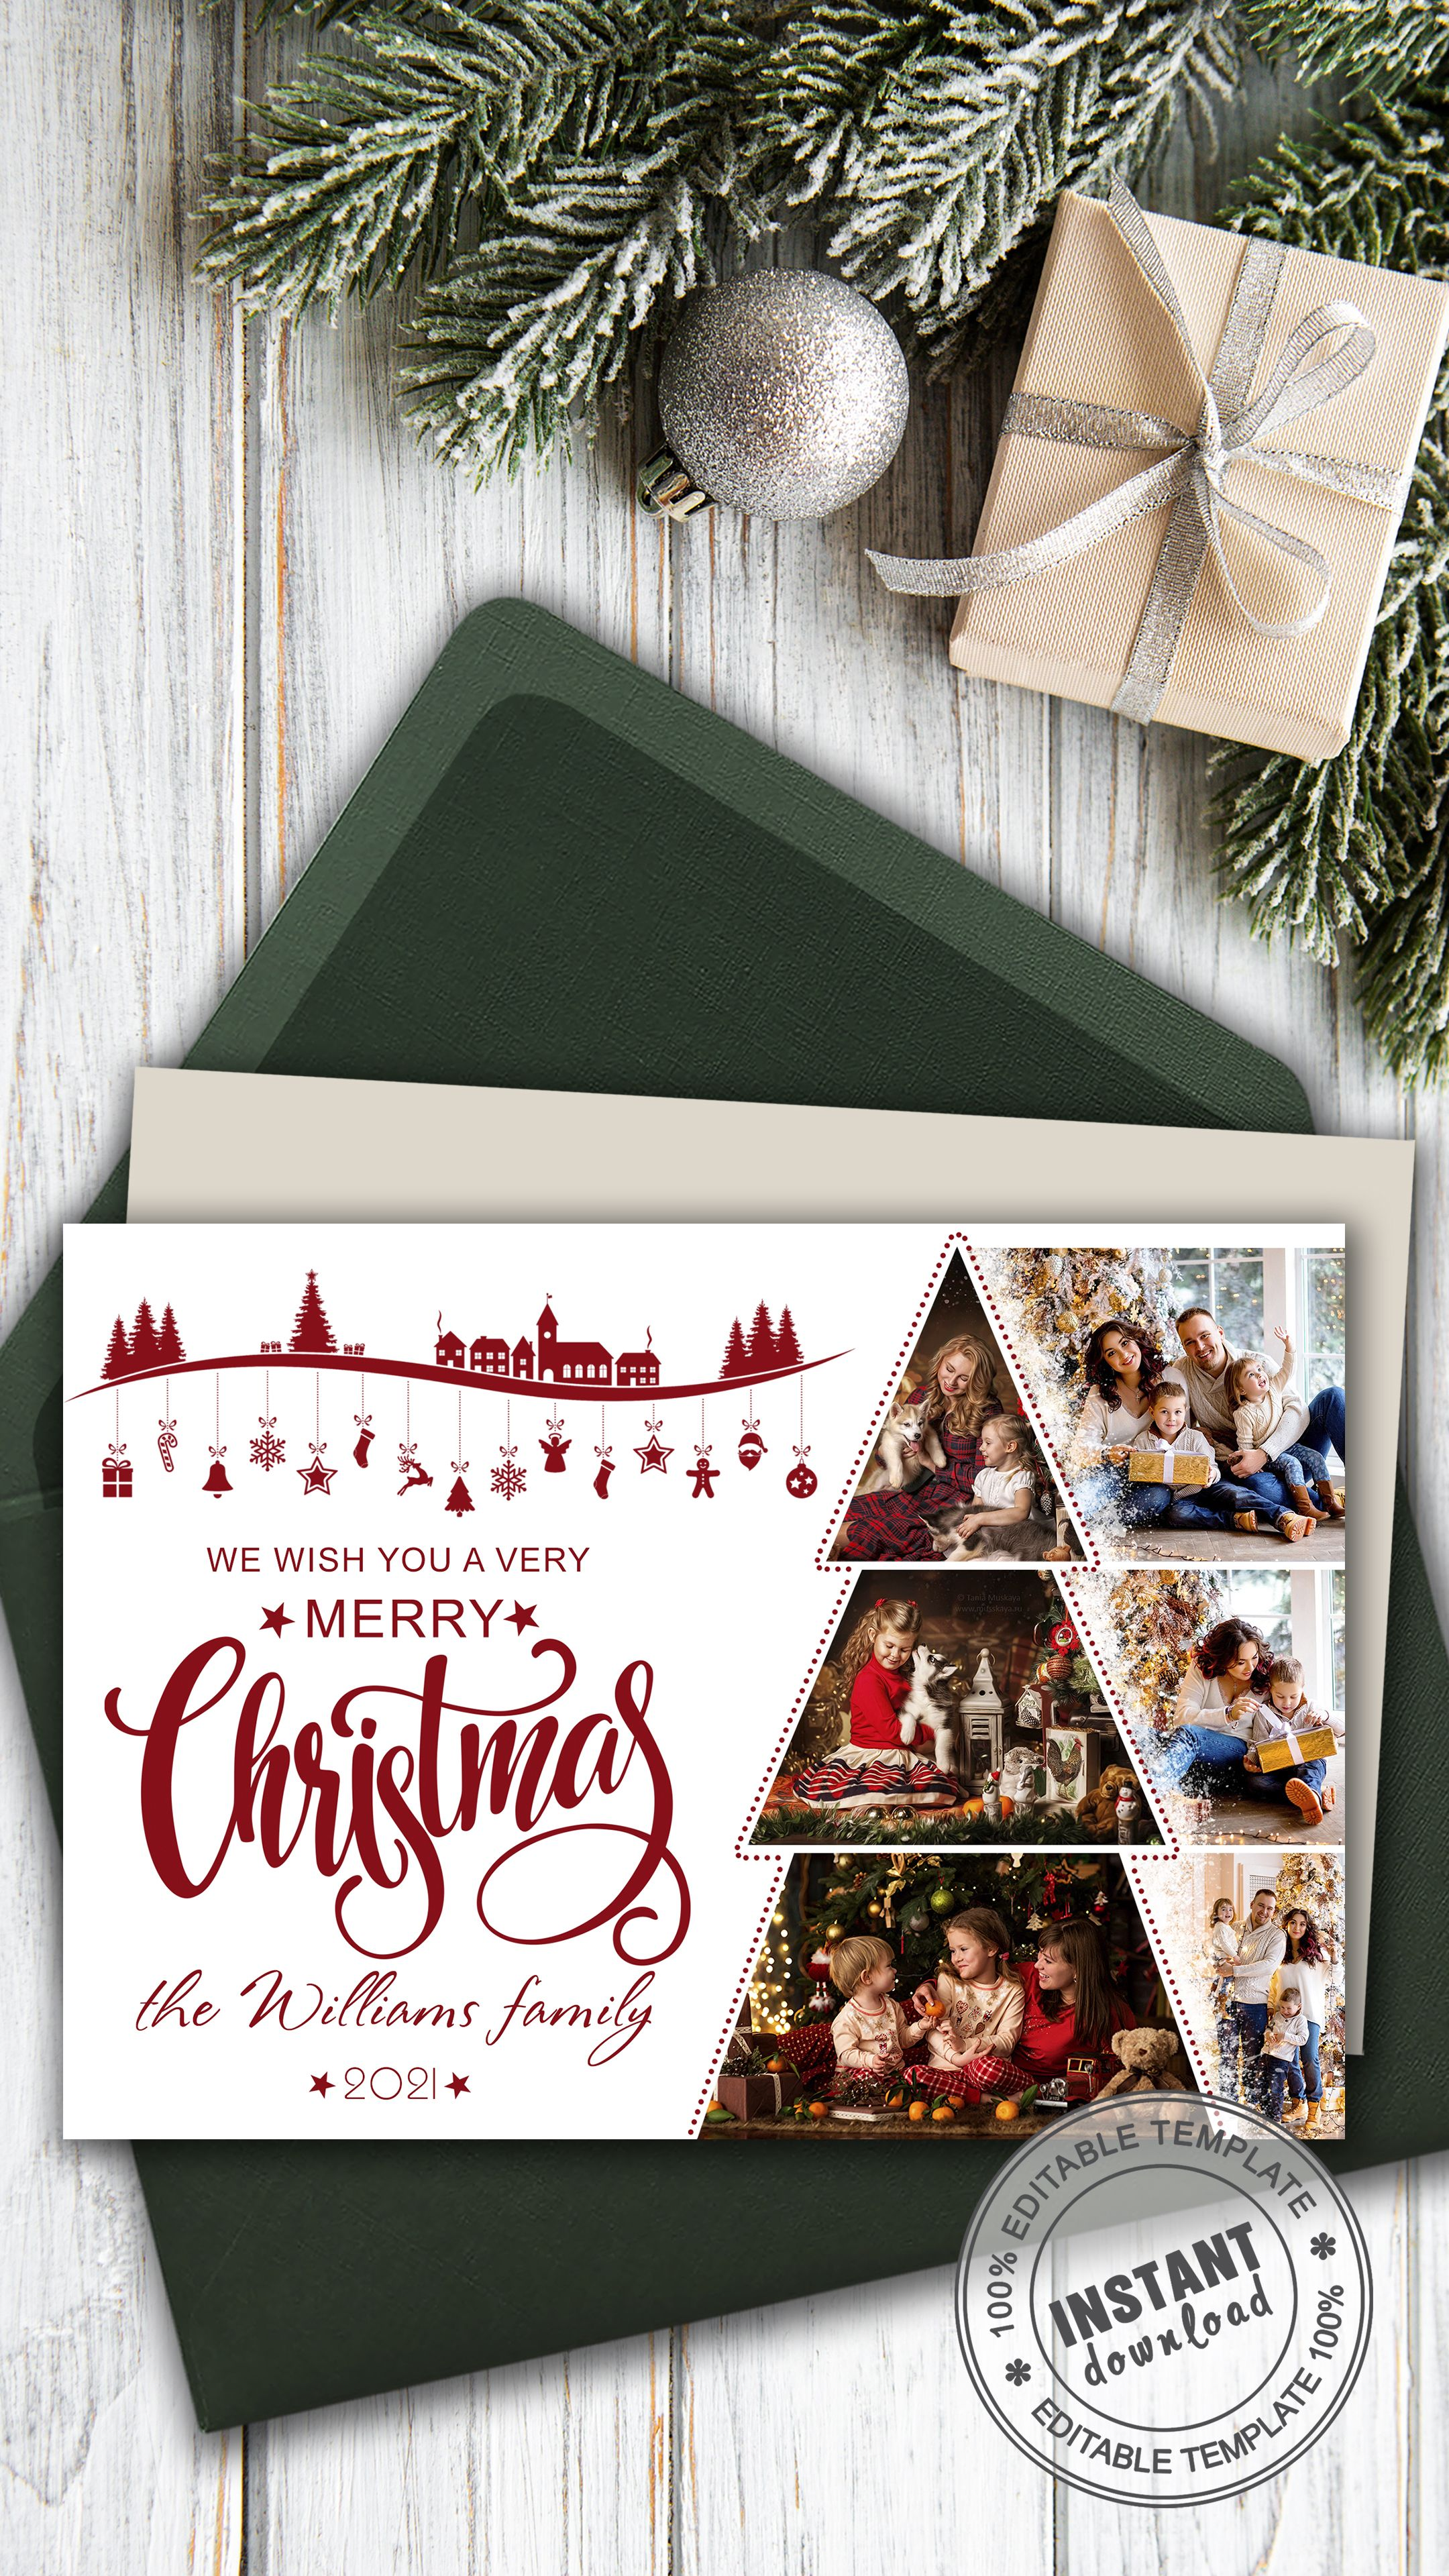 Card Template Christmas Tree Holiday Family Card With Photo Etsy Personalised Christmas Cards Family Holiday Cards Christmas Templates